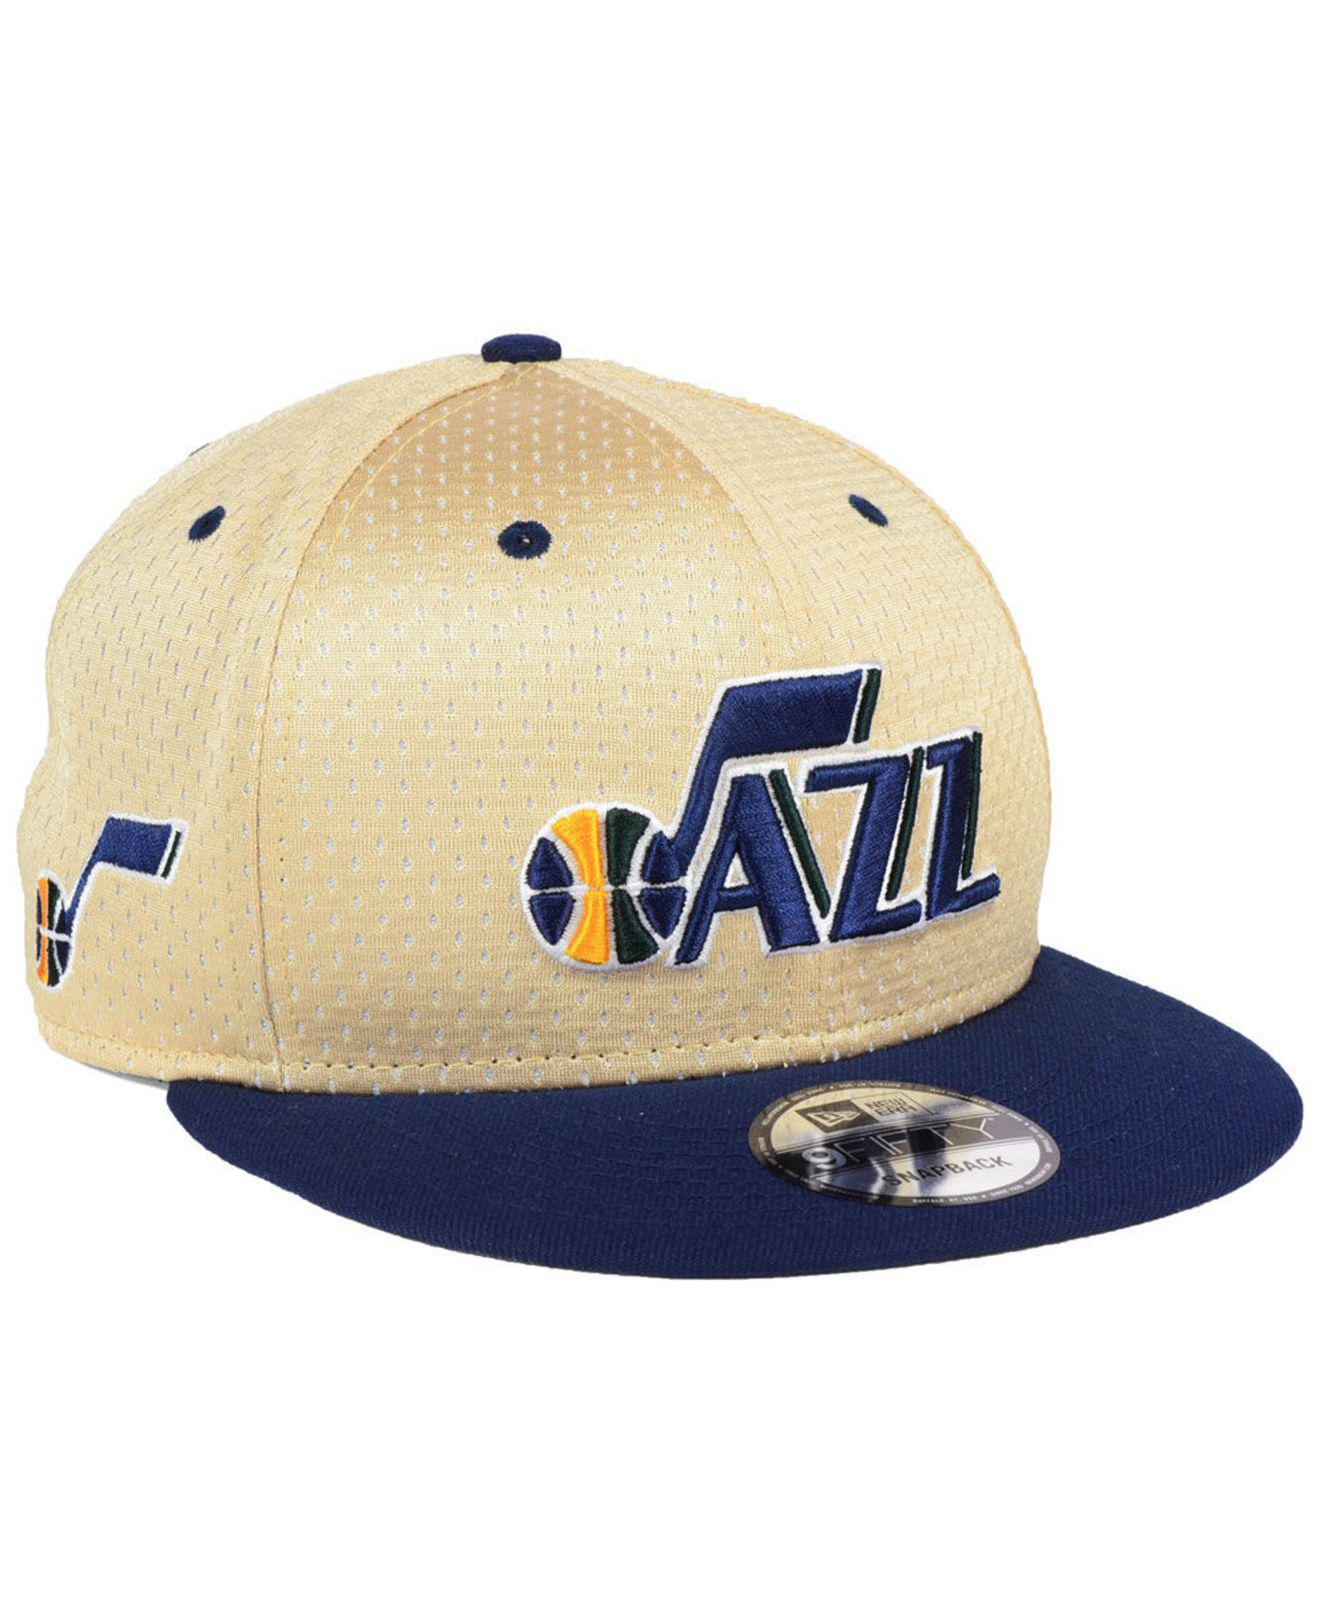 online retailer 267e0 4ee44 best price toronto raptors new era nba triple gold 9fifty snapback cap  f0716 65f3c  good ktz. mens blue utah jazz champagne 9fifty snapback cap  47a1e 517aa